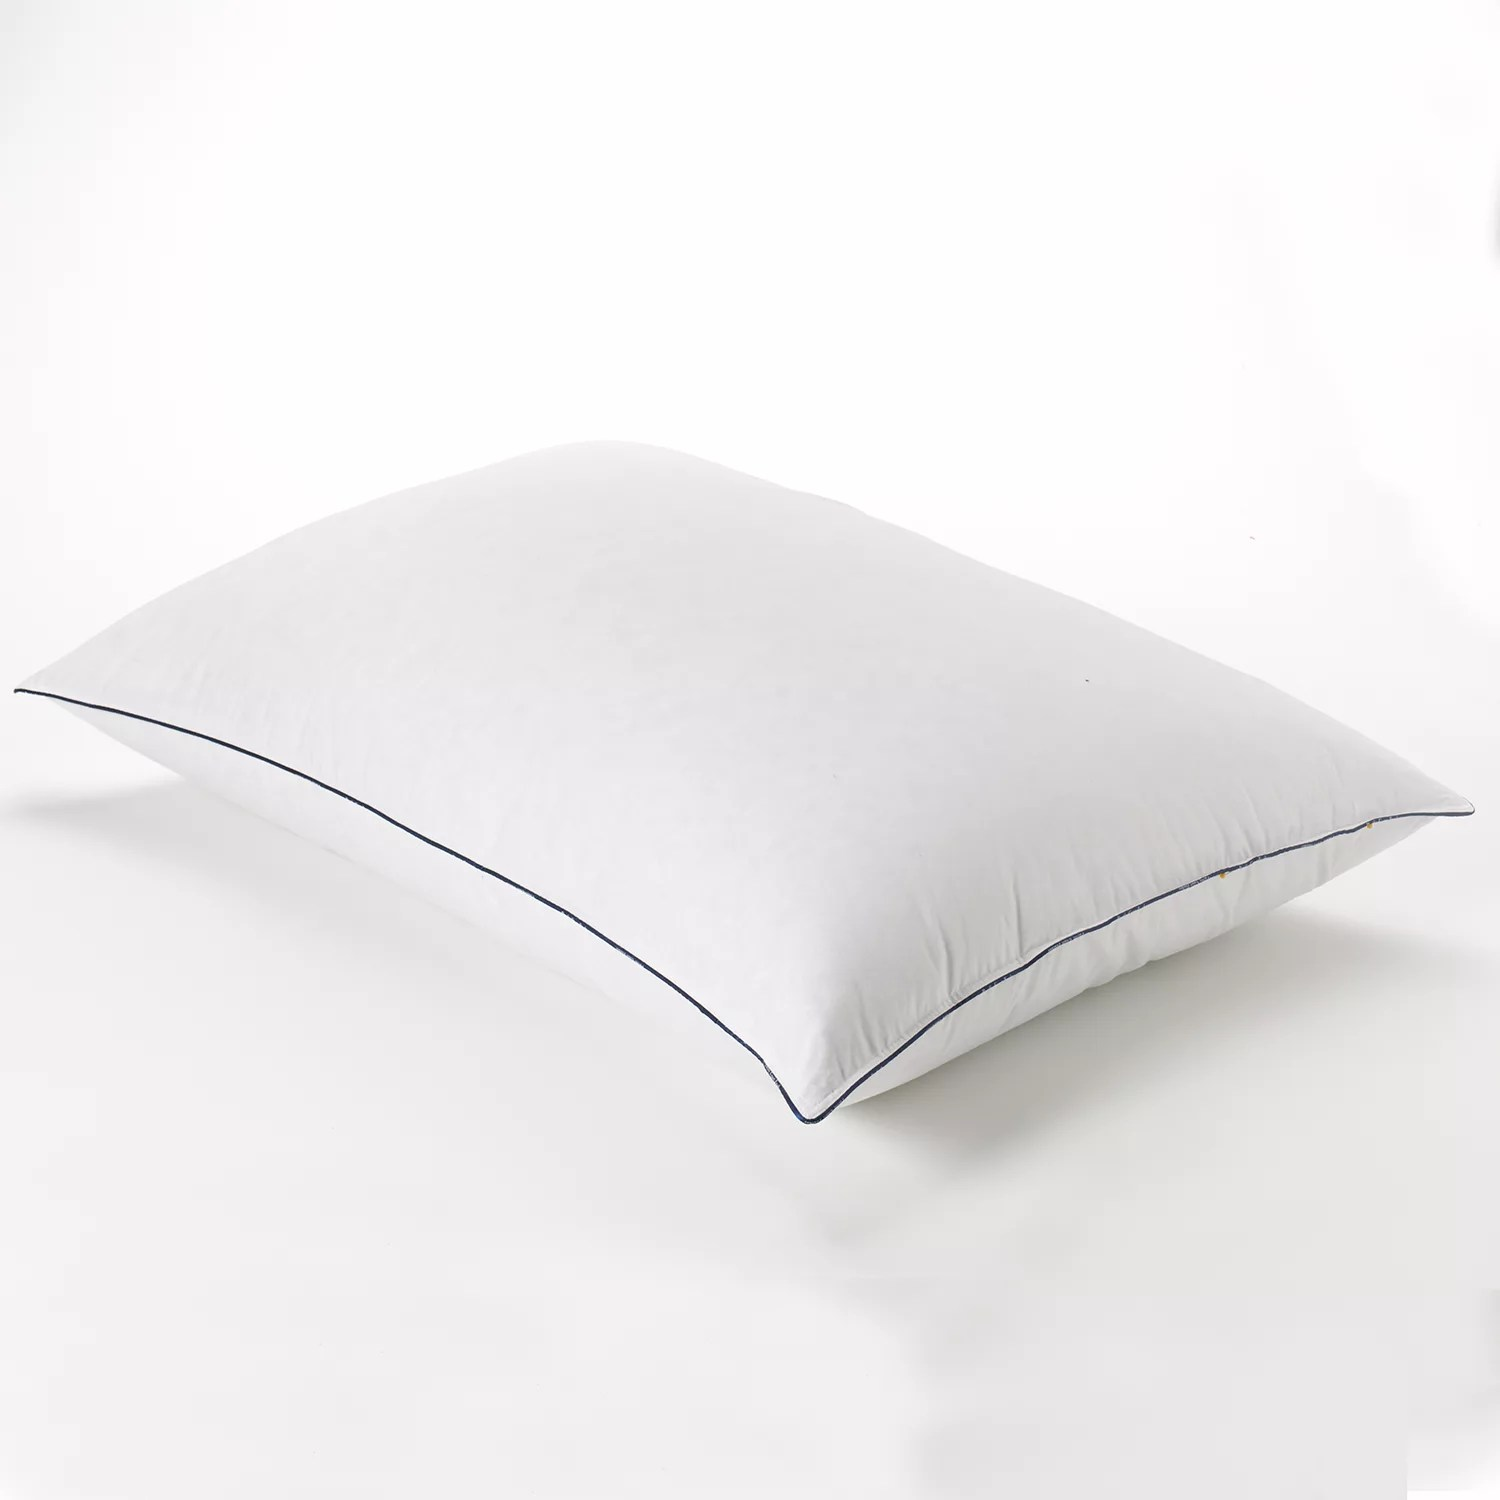 pacific coast feather down pocket 300 thread count feather down pillow